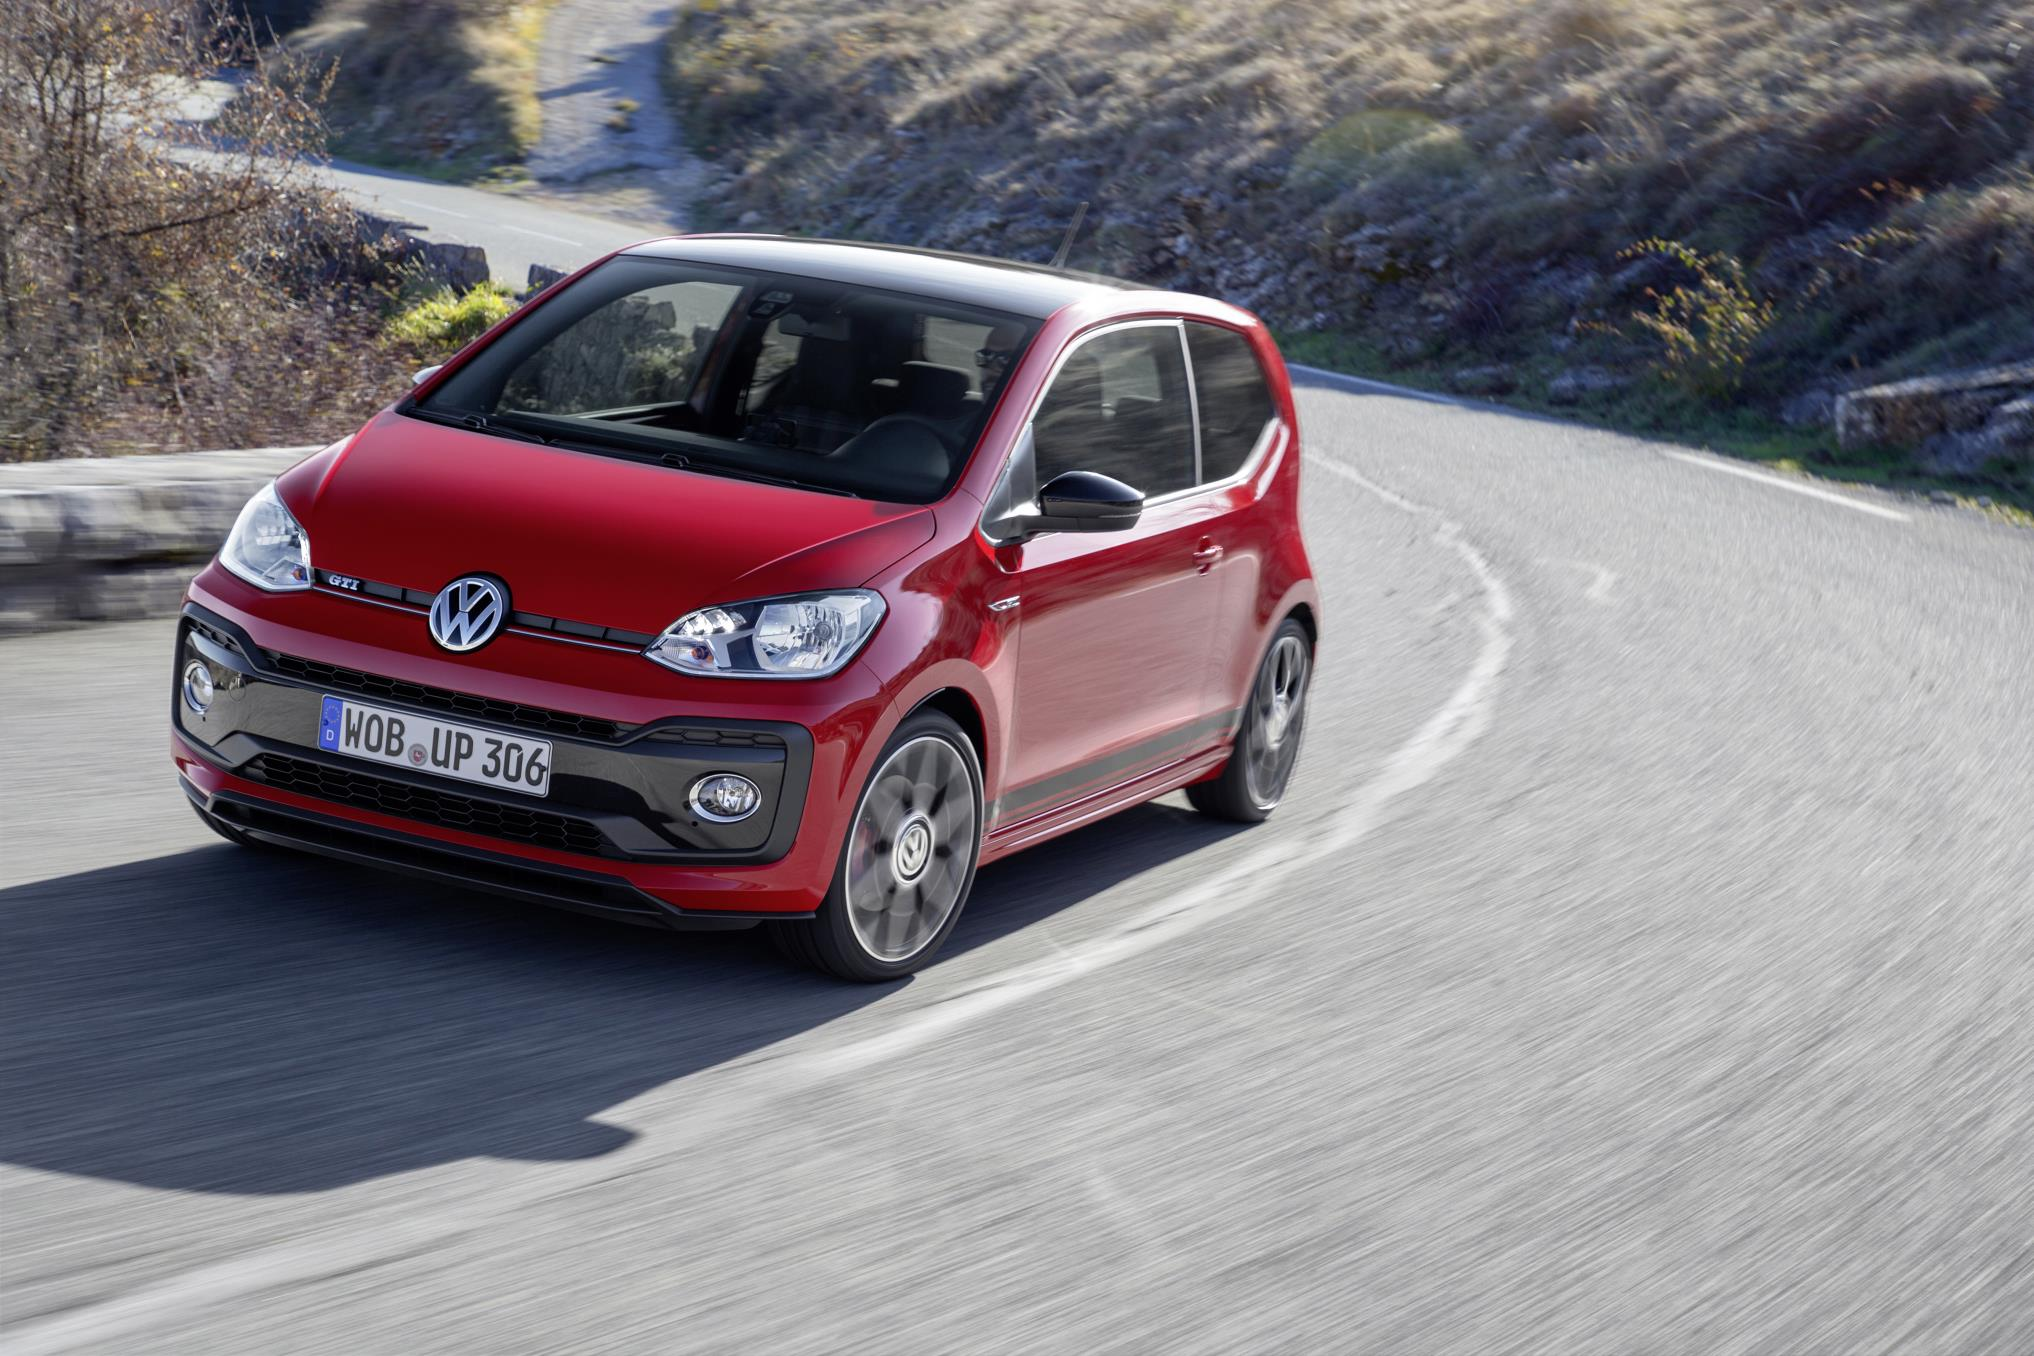 Red VW up GTI city car driving on winding road